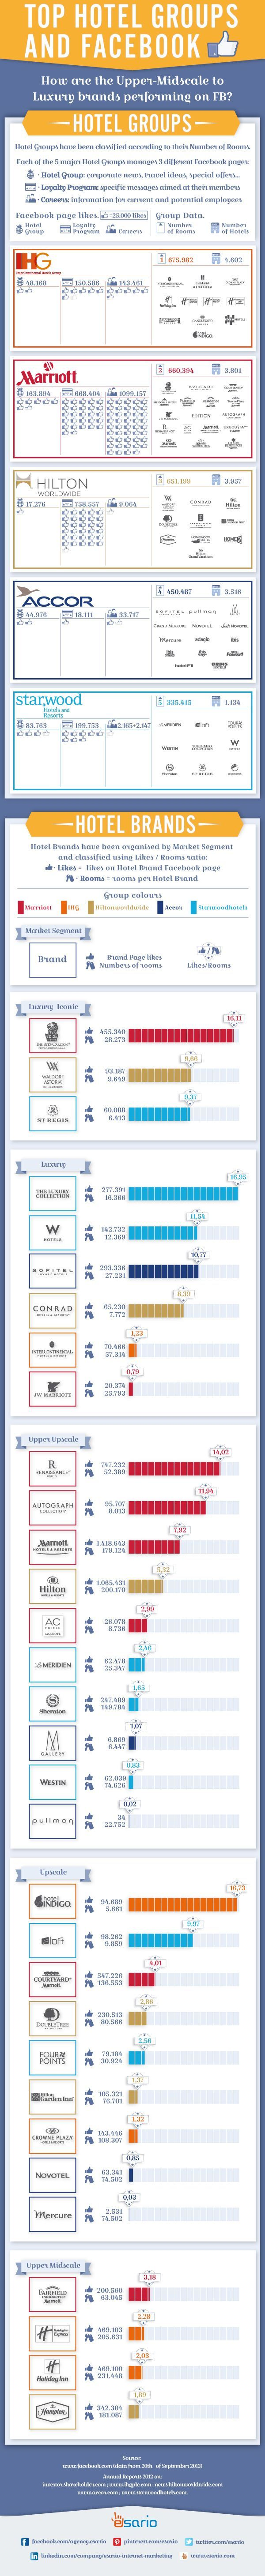 Top Hotel Groups And Facebook #Infographic #Hotels #Facebook